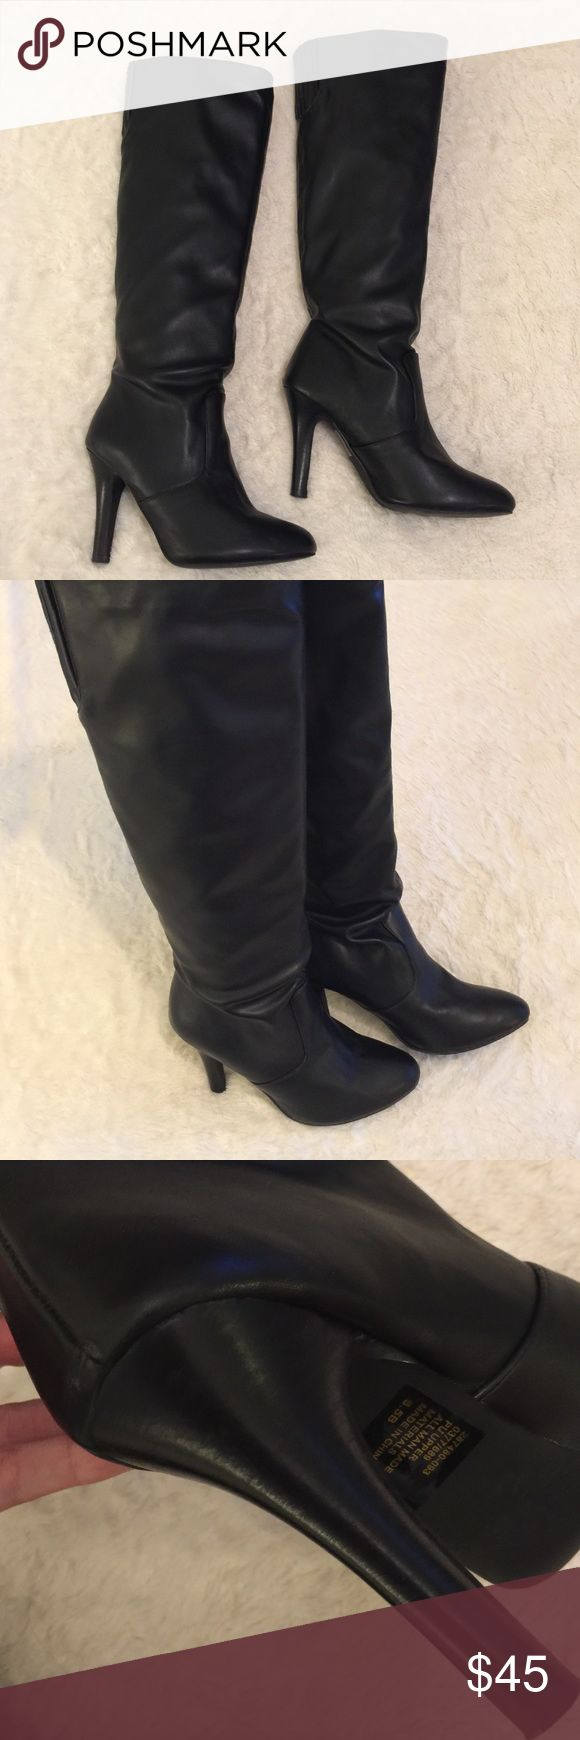 "Colin Stuart Knee High Boots Stunning Colin Stuart knee high boots originally purchased from the Victoria's Secret catalog. 3.75"" heel. Colin Stuart Shoes Heeled Boots"